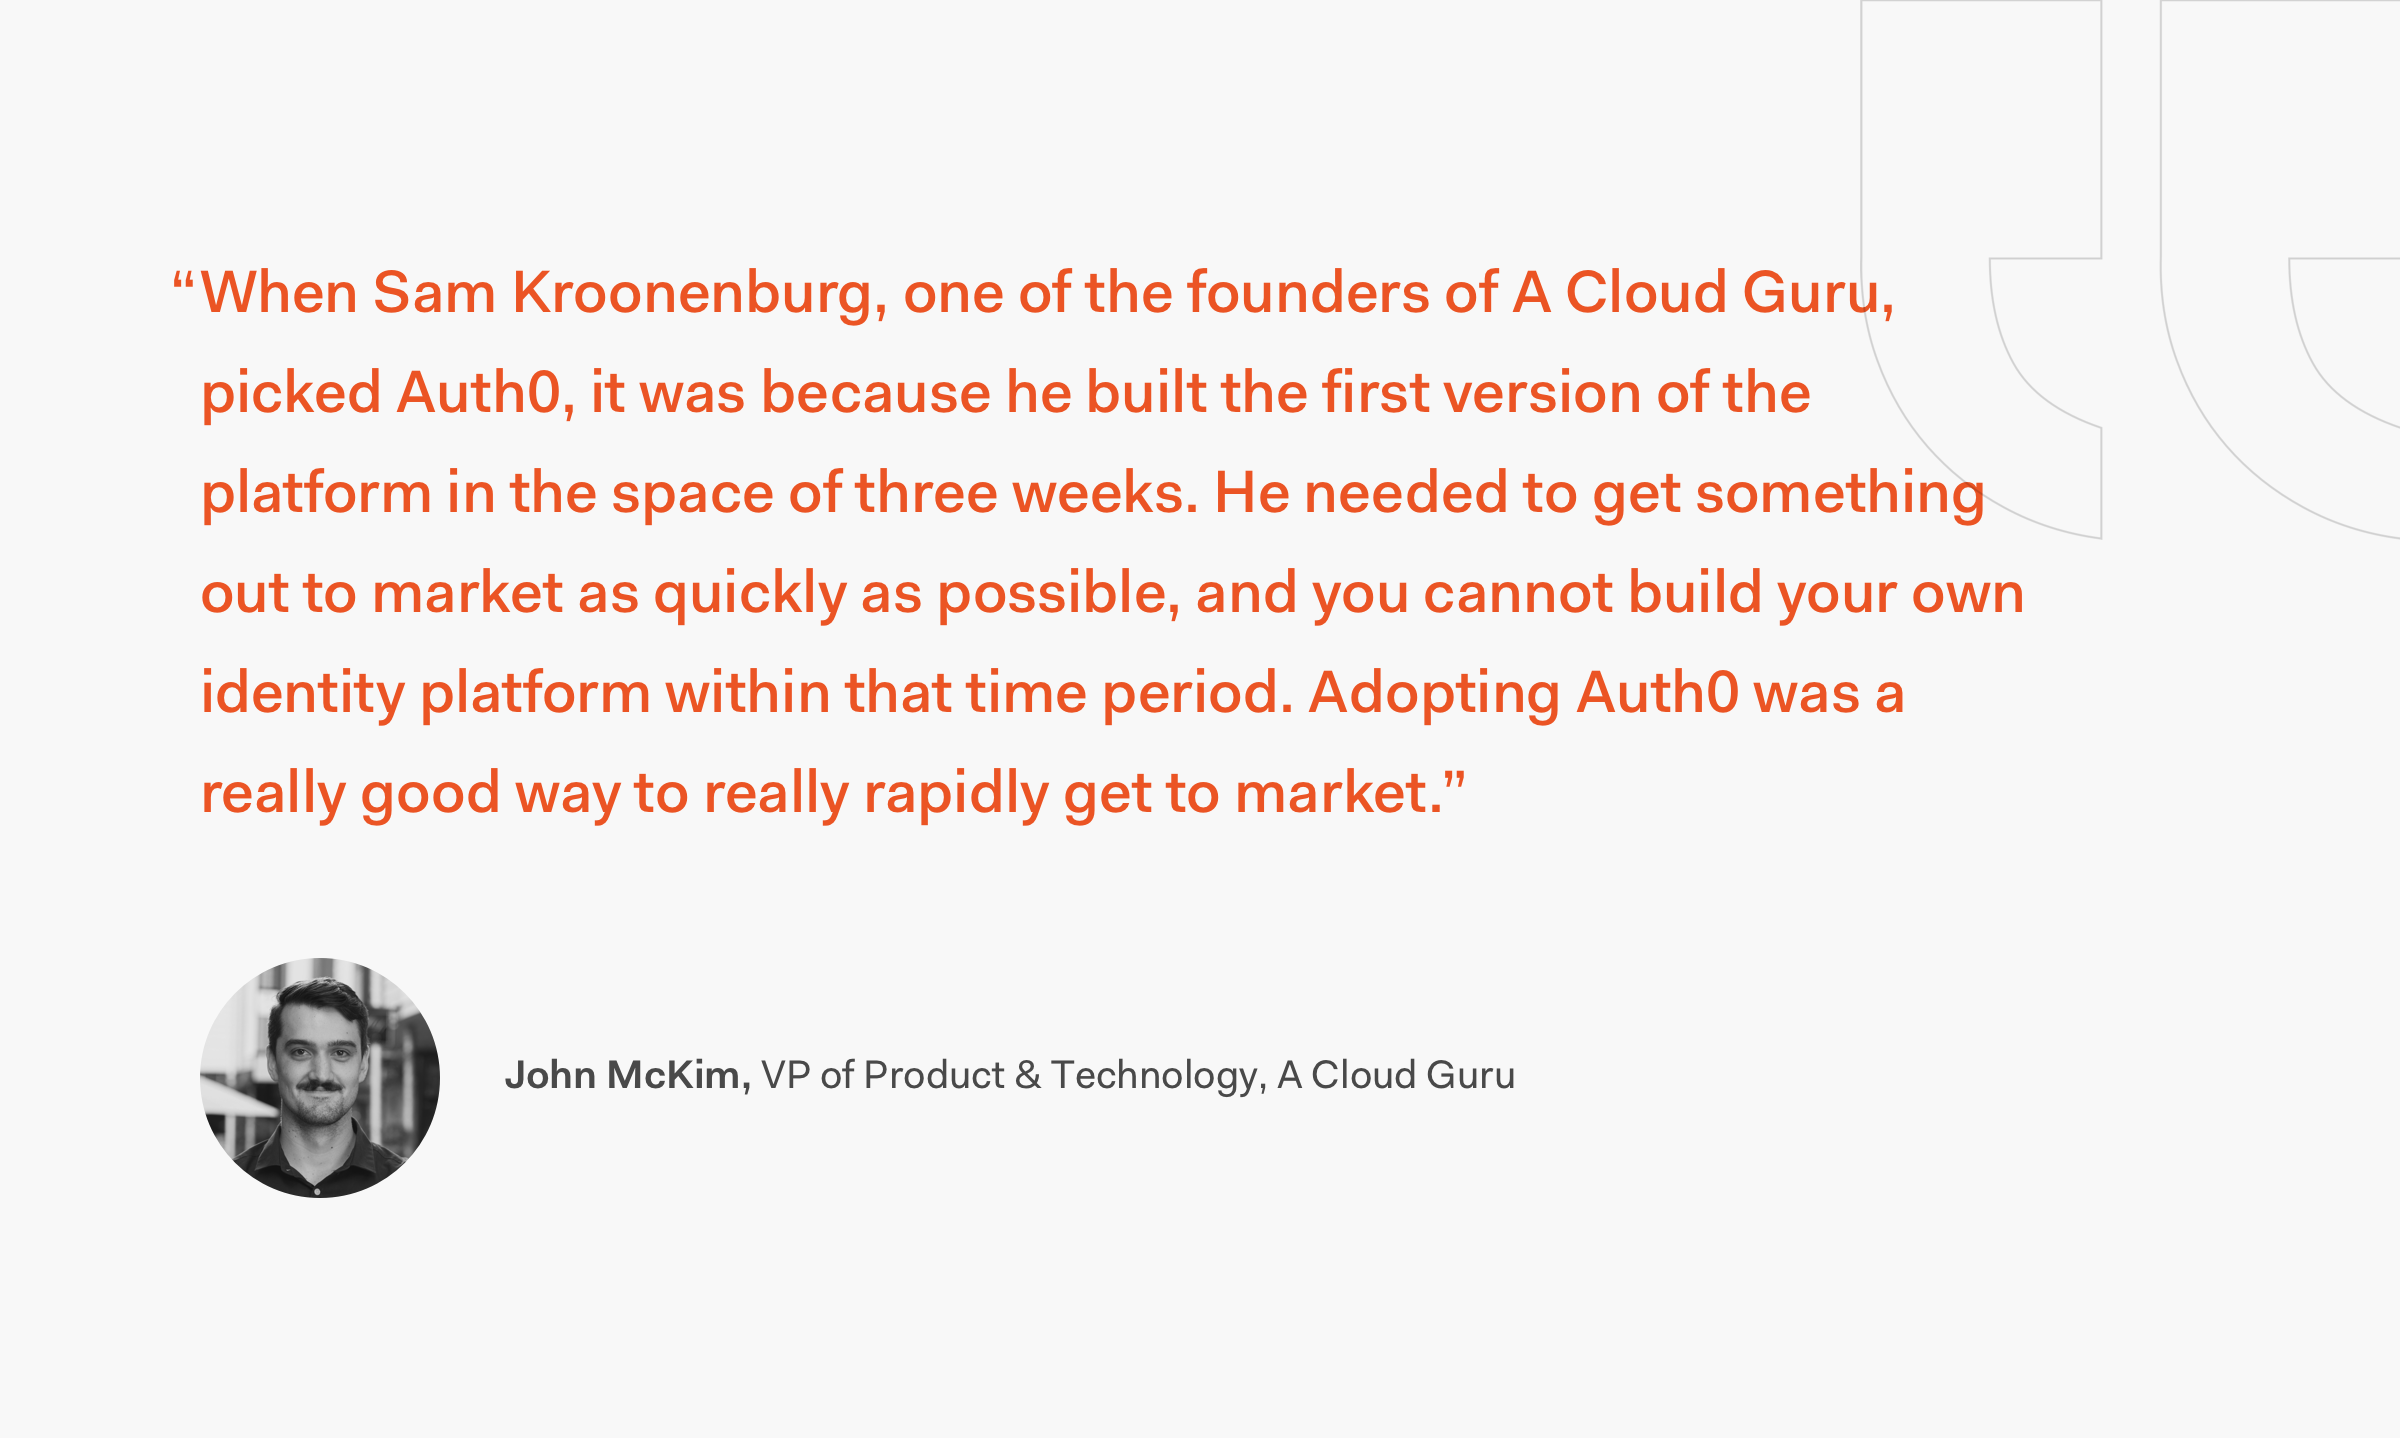 John McKim A Cloud Guru Quote